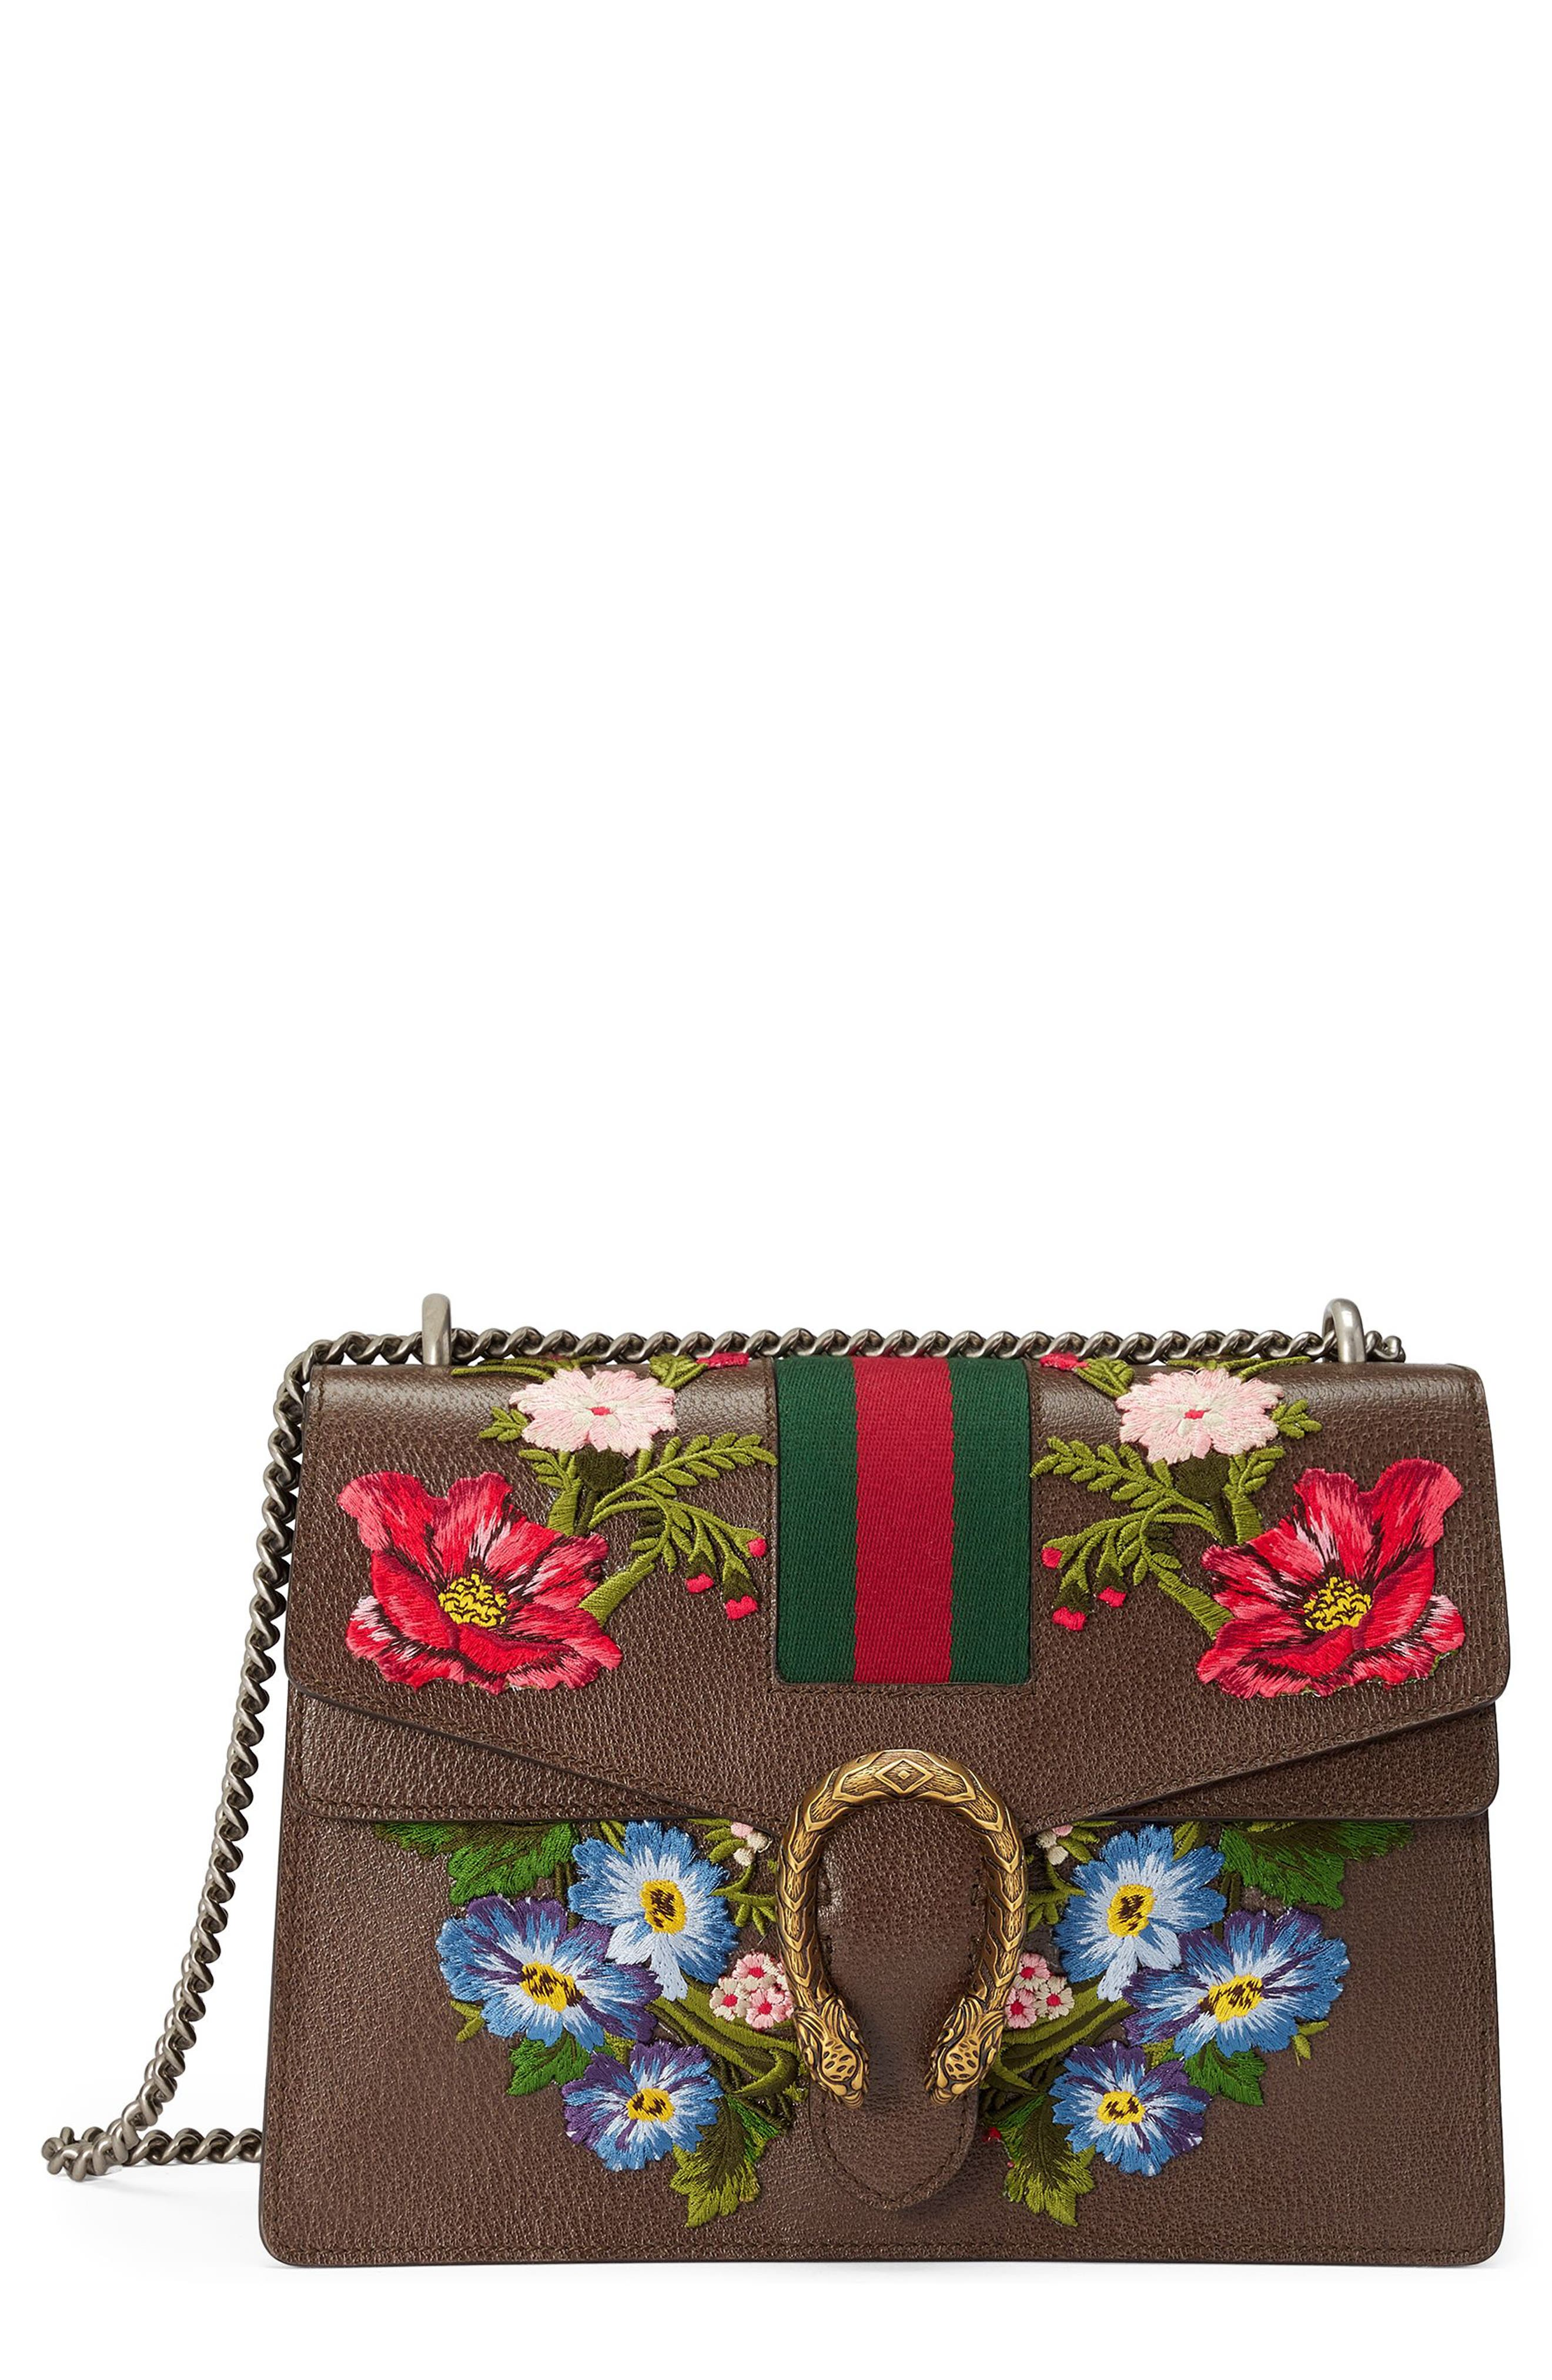 GUCCI Medium Dionysus Embroidered Leather Shoulder Bag